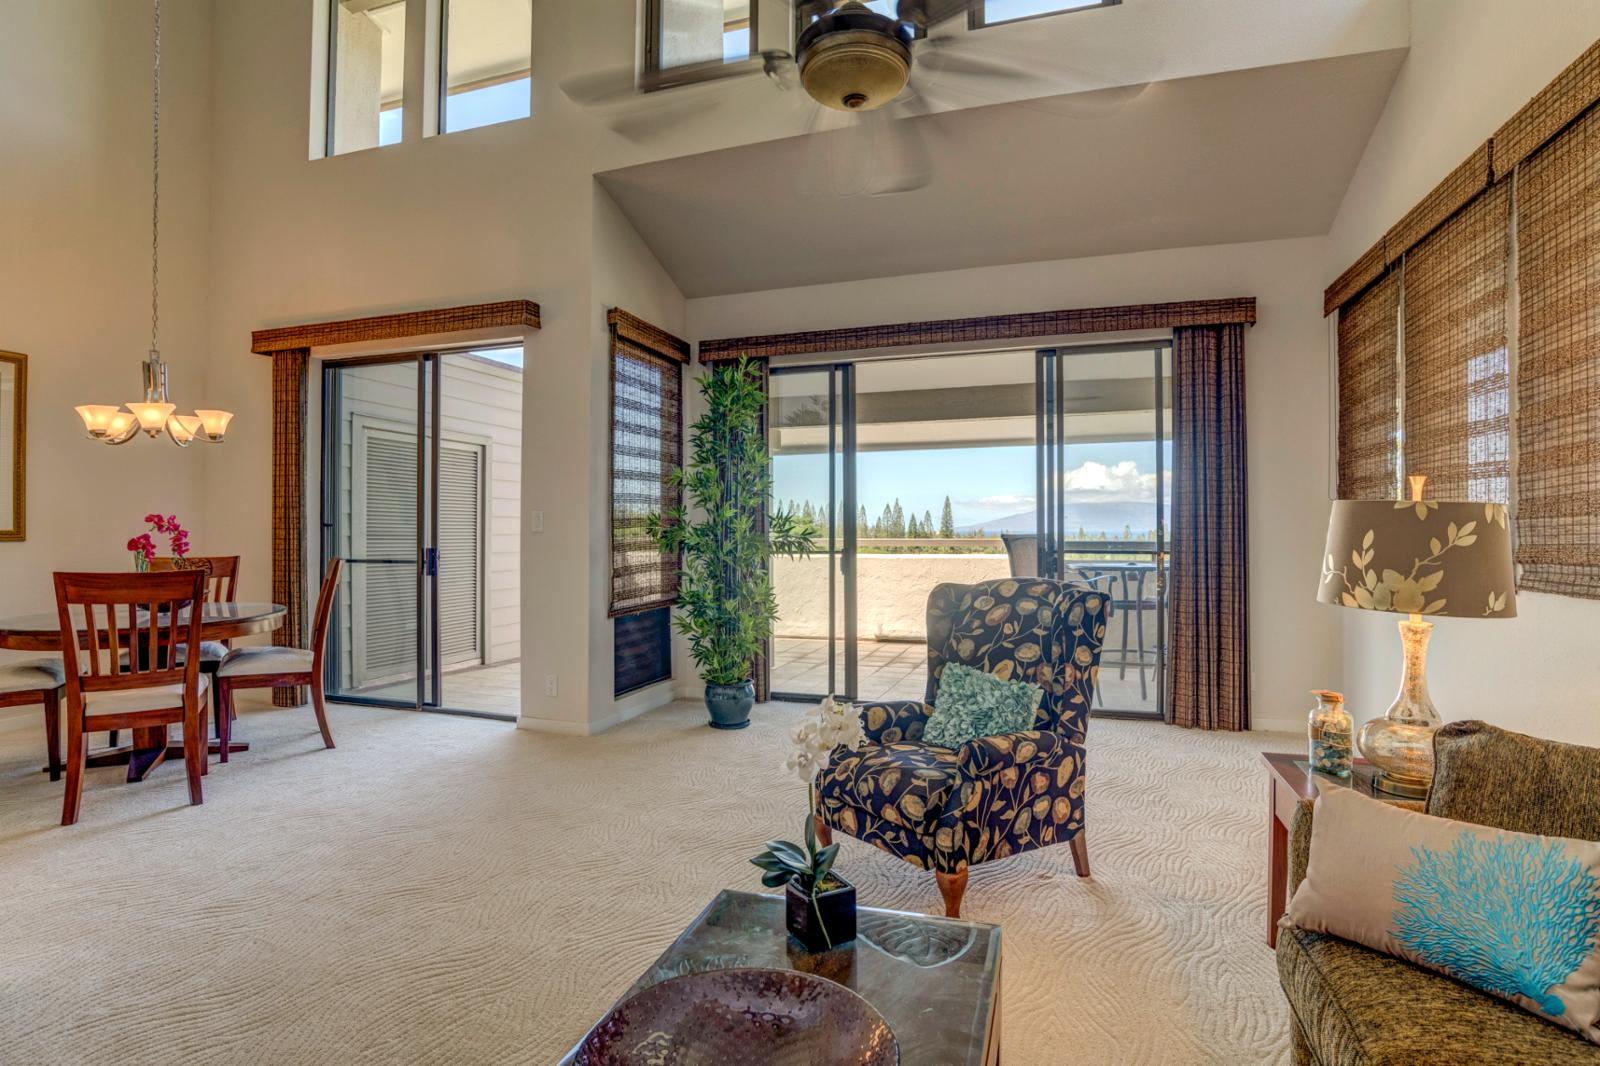 Rare skylights and vaulted ceilings, dual sliding doors out to lanai